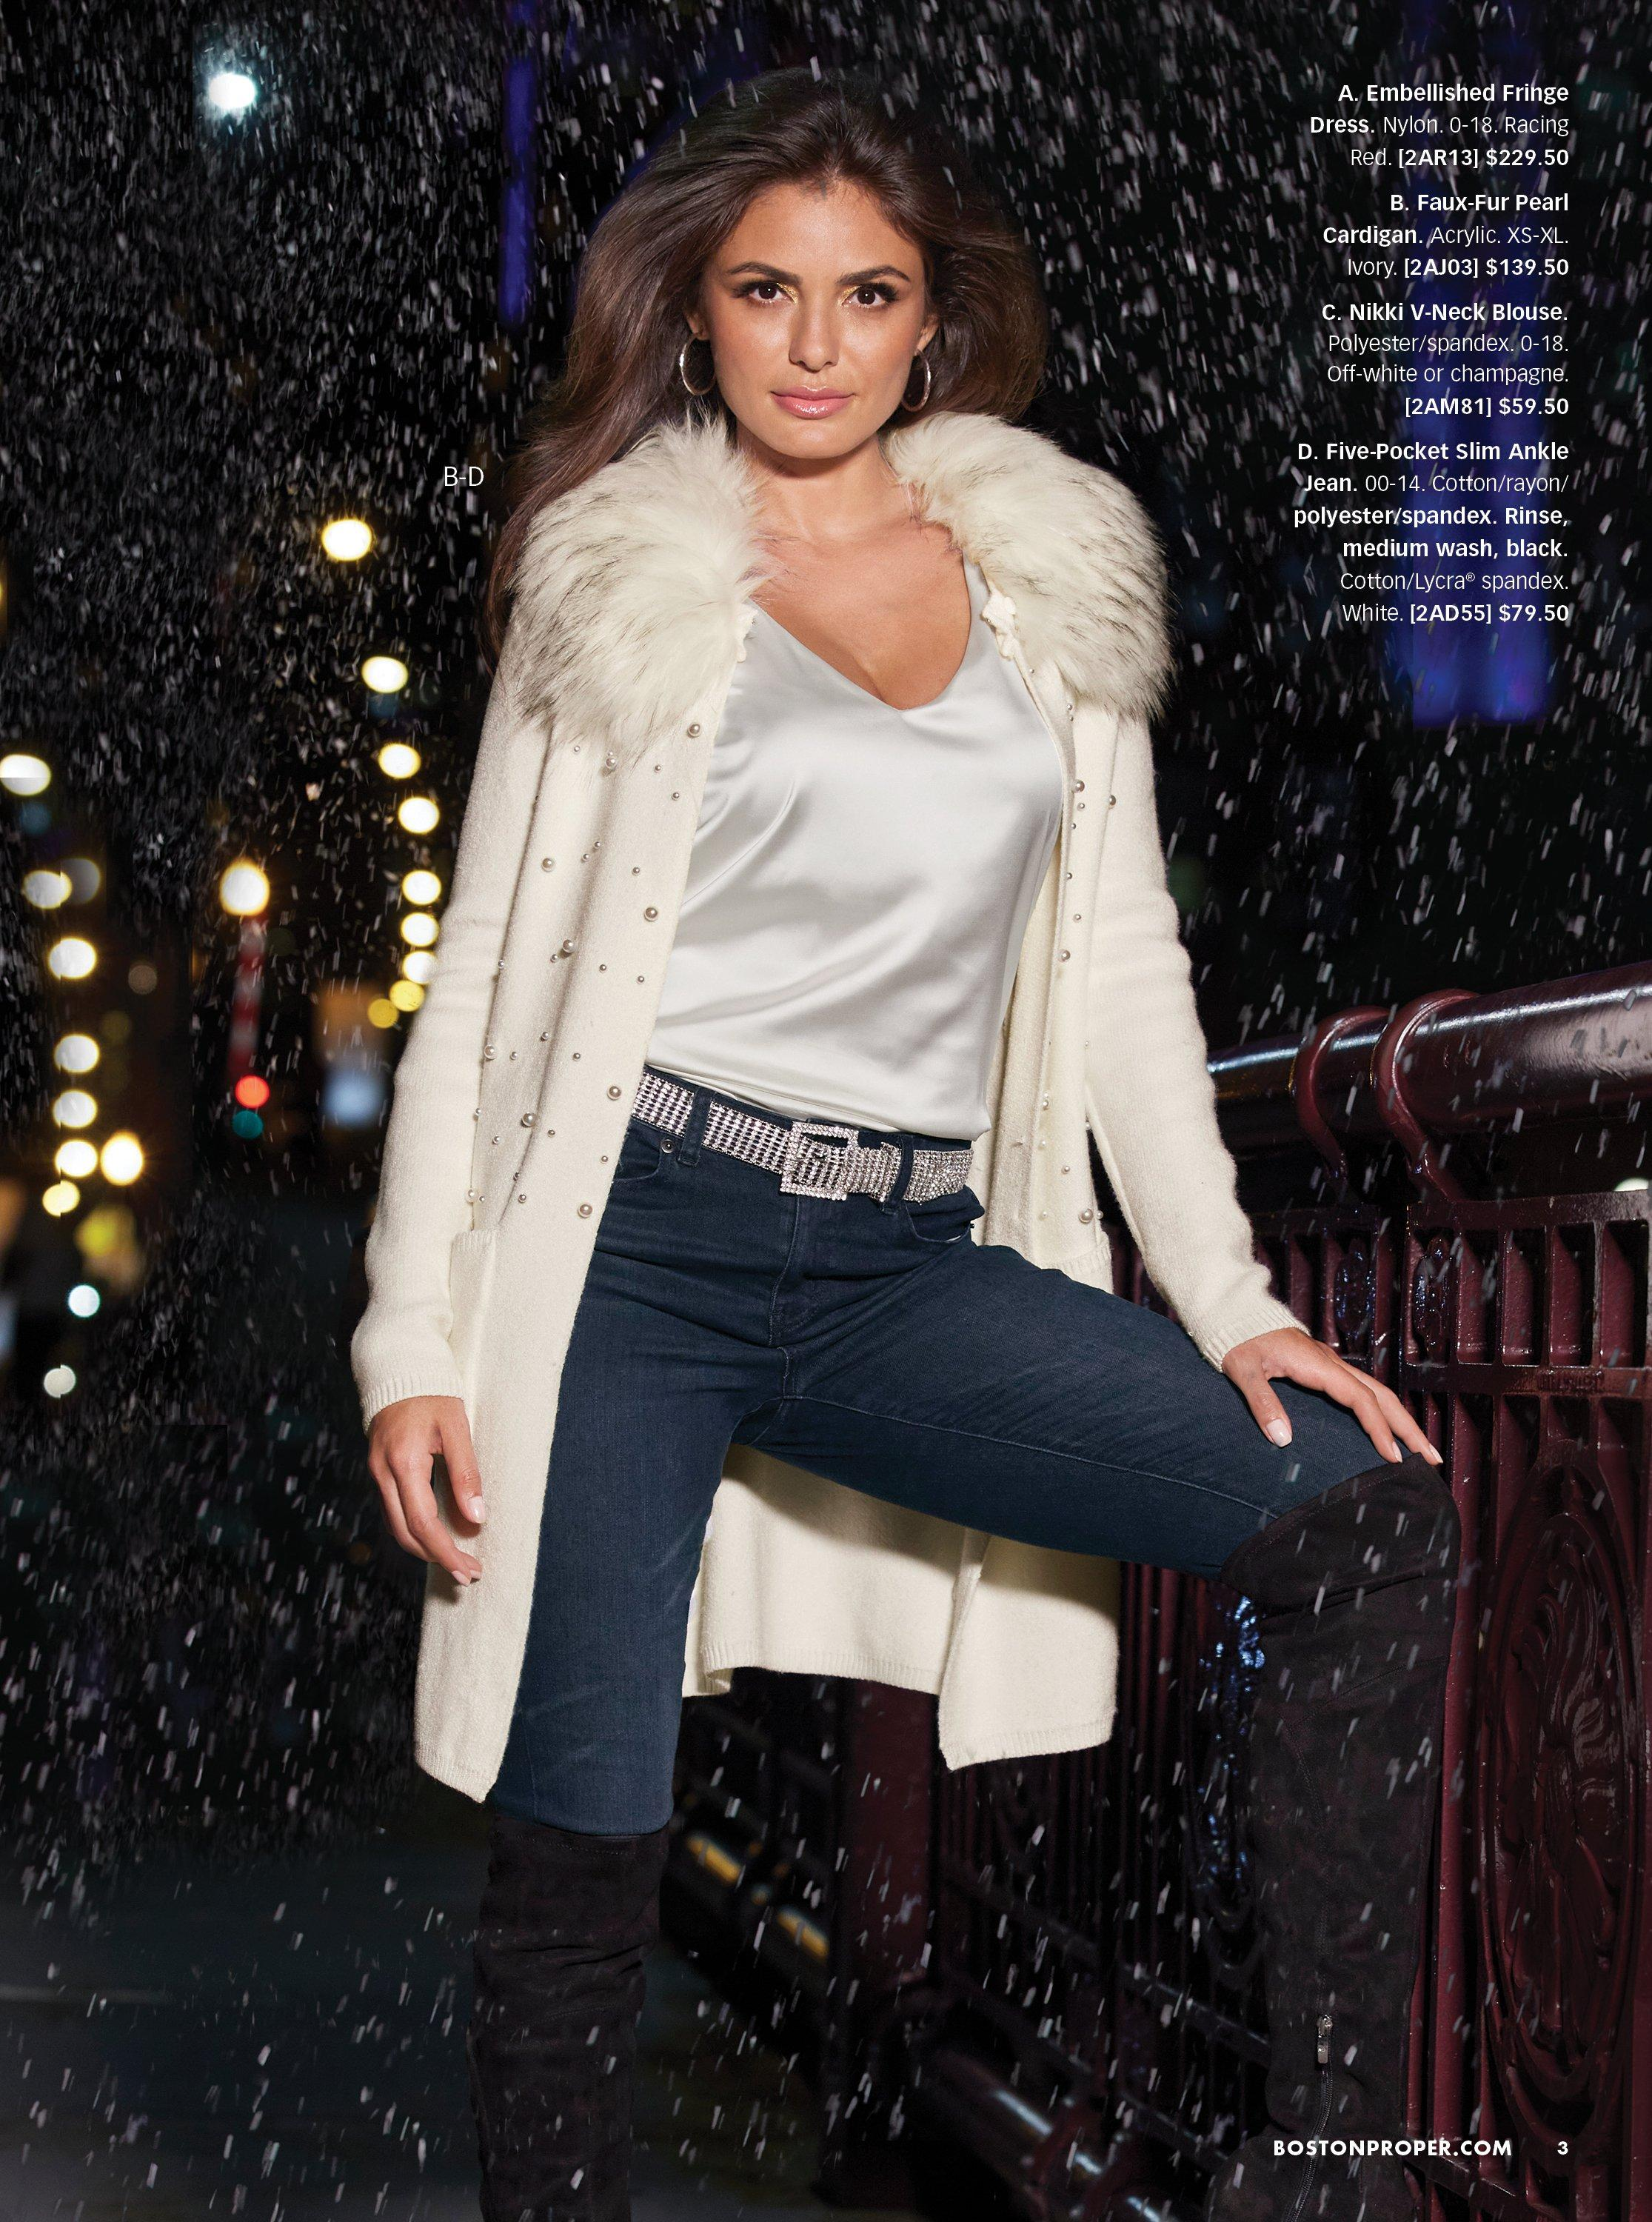 model wearing a white embellished faux fur cardigan, white charm tank top, silver rhinestone belt, jeans, and black over-the-knee boots.